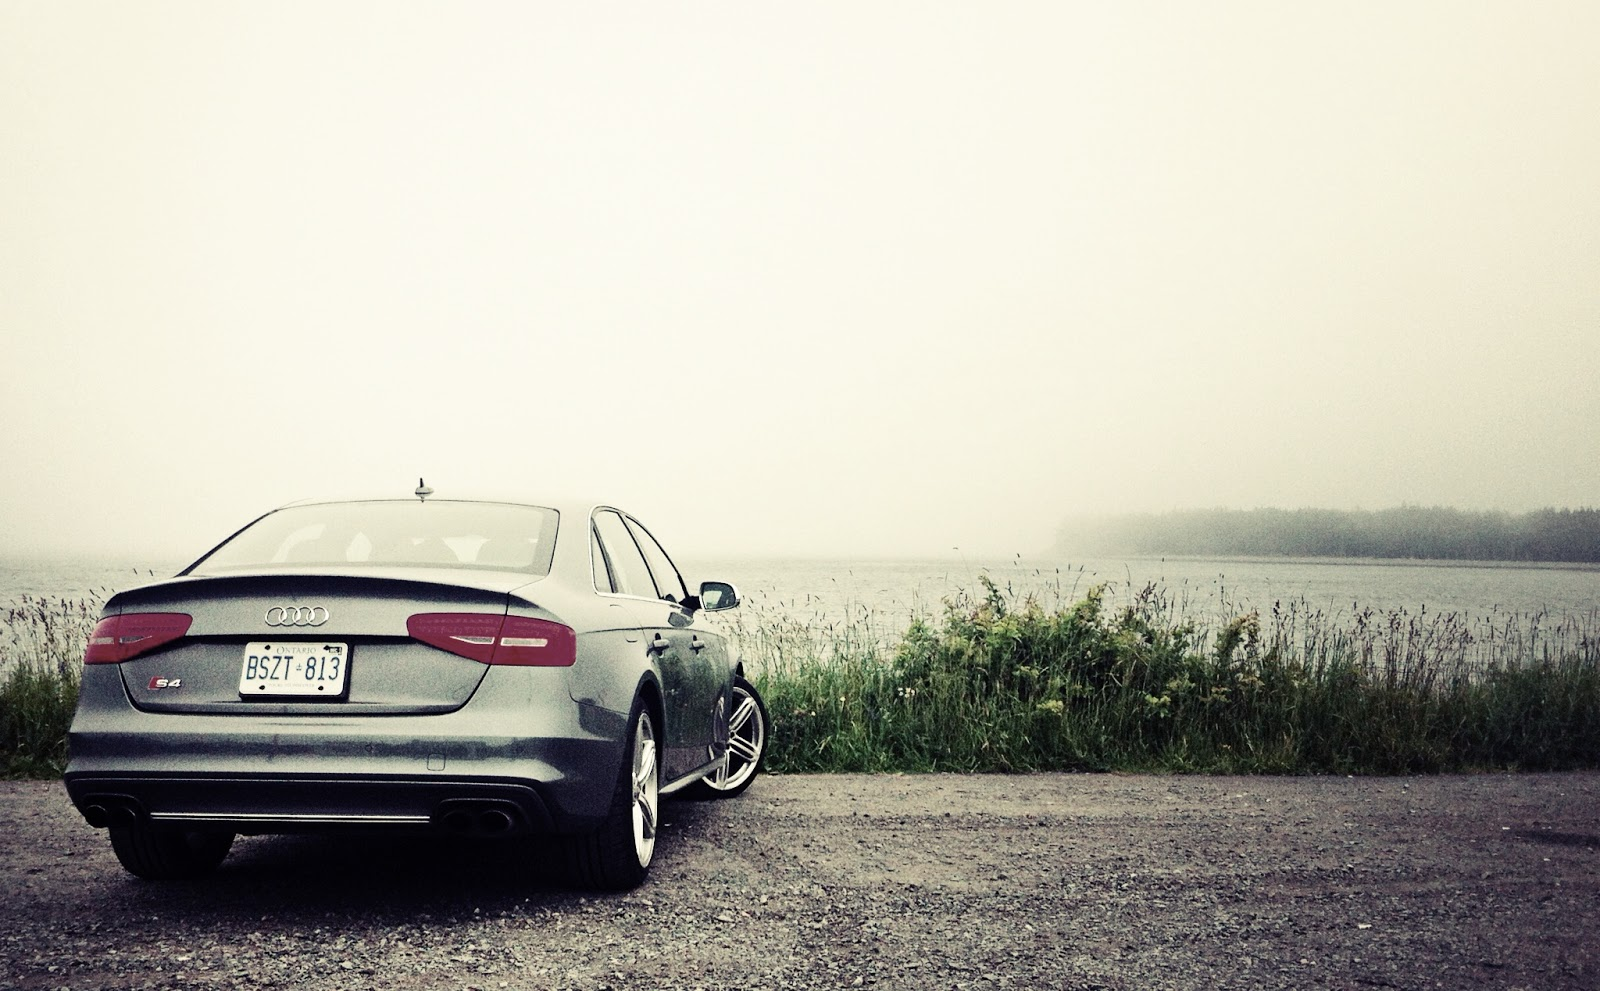 Audi s4 0 to 60 time 10